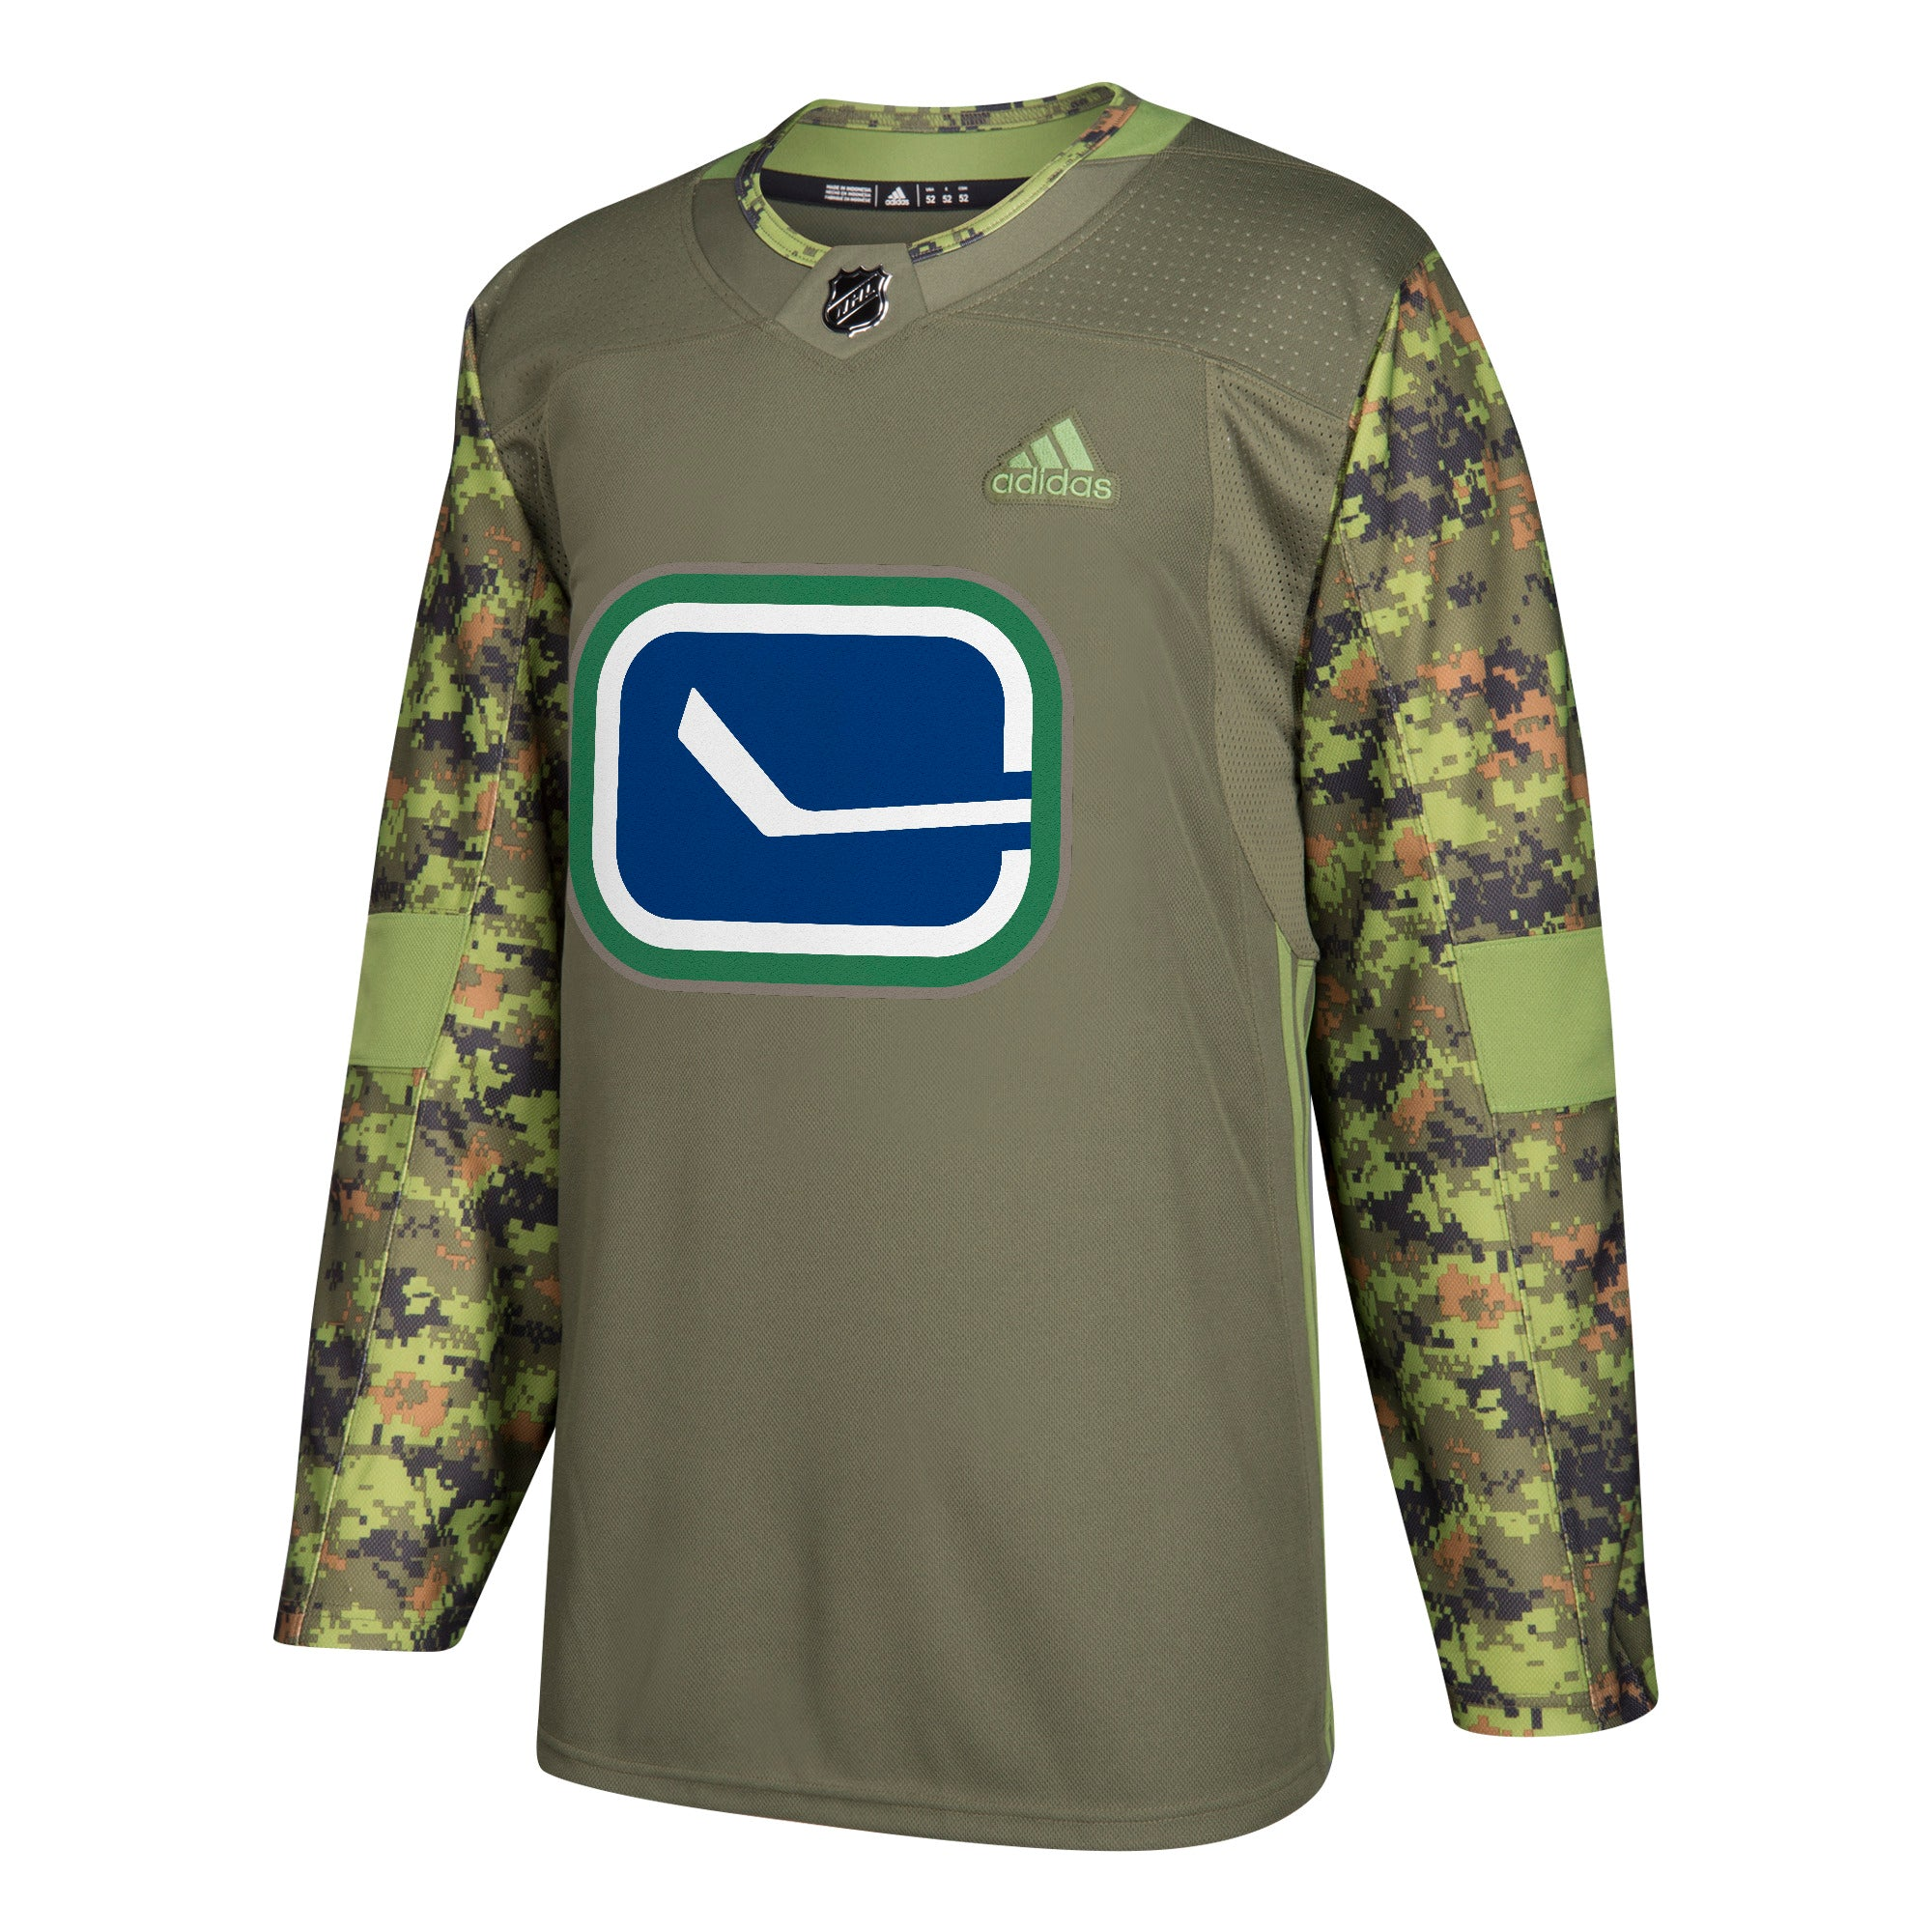 Military Camo Moss Vancouver Canucks 370J Adidas NHL Authentic Pro Jersey be2f38094